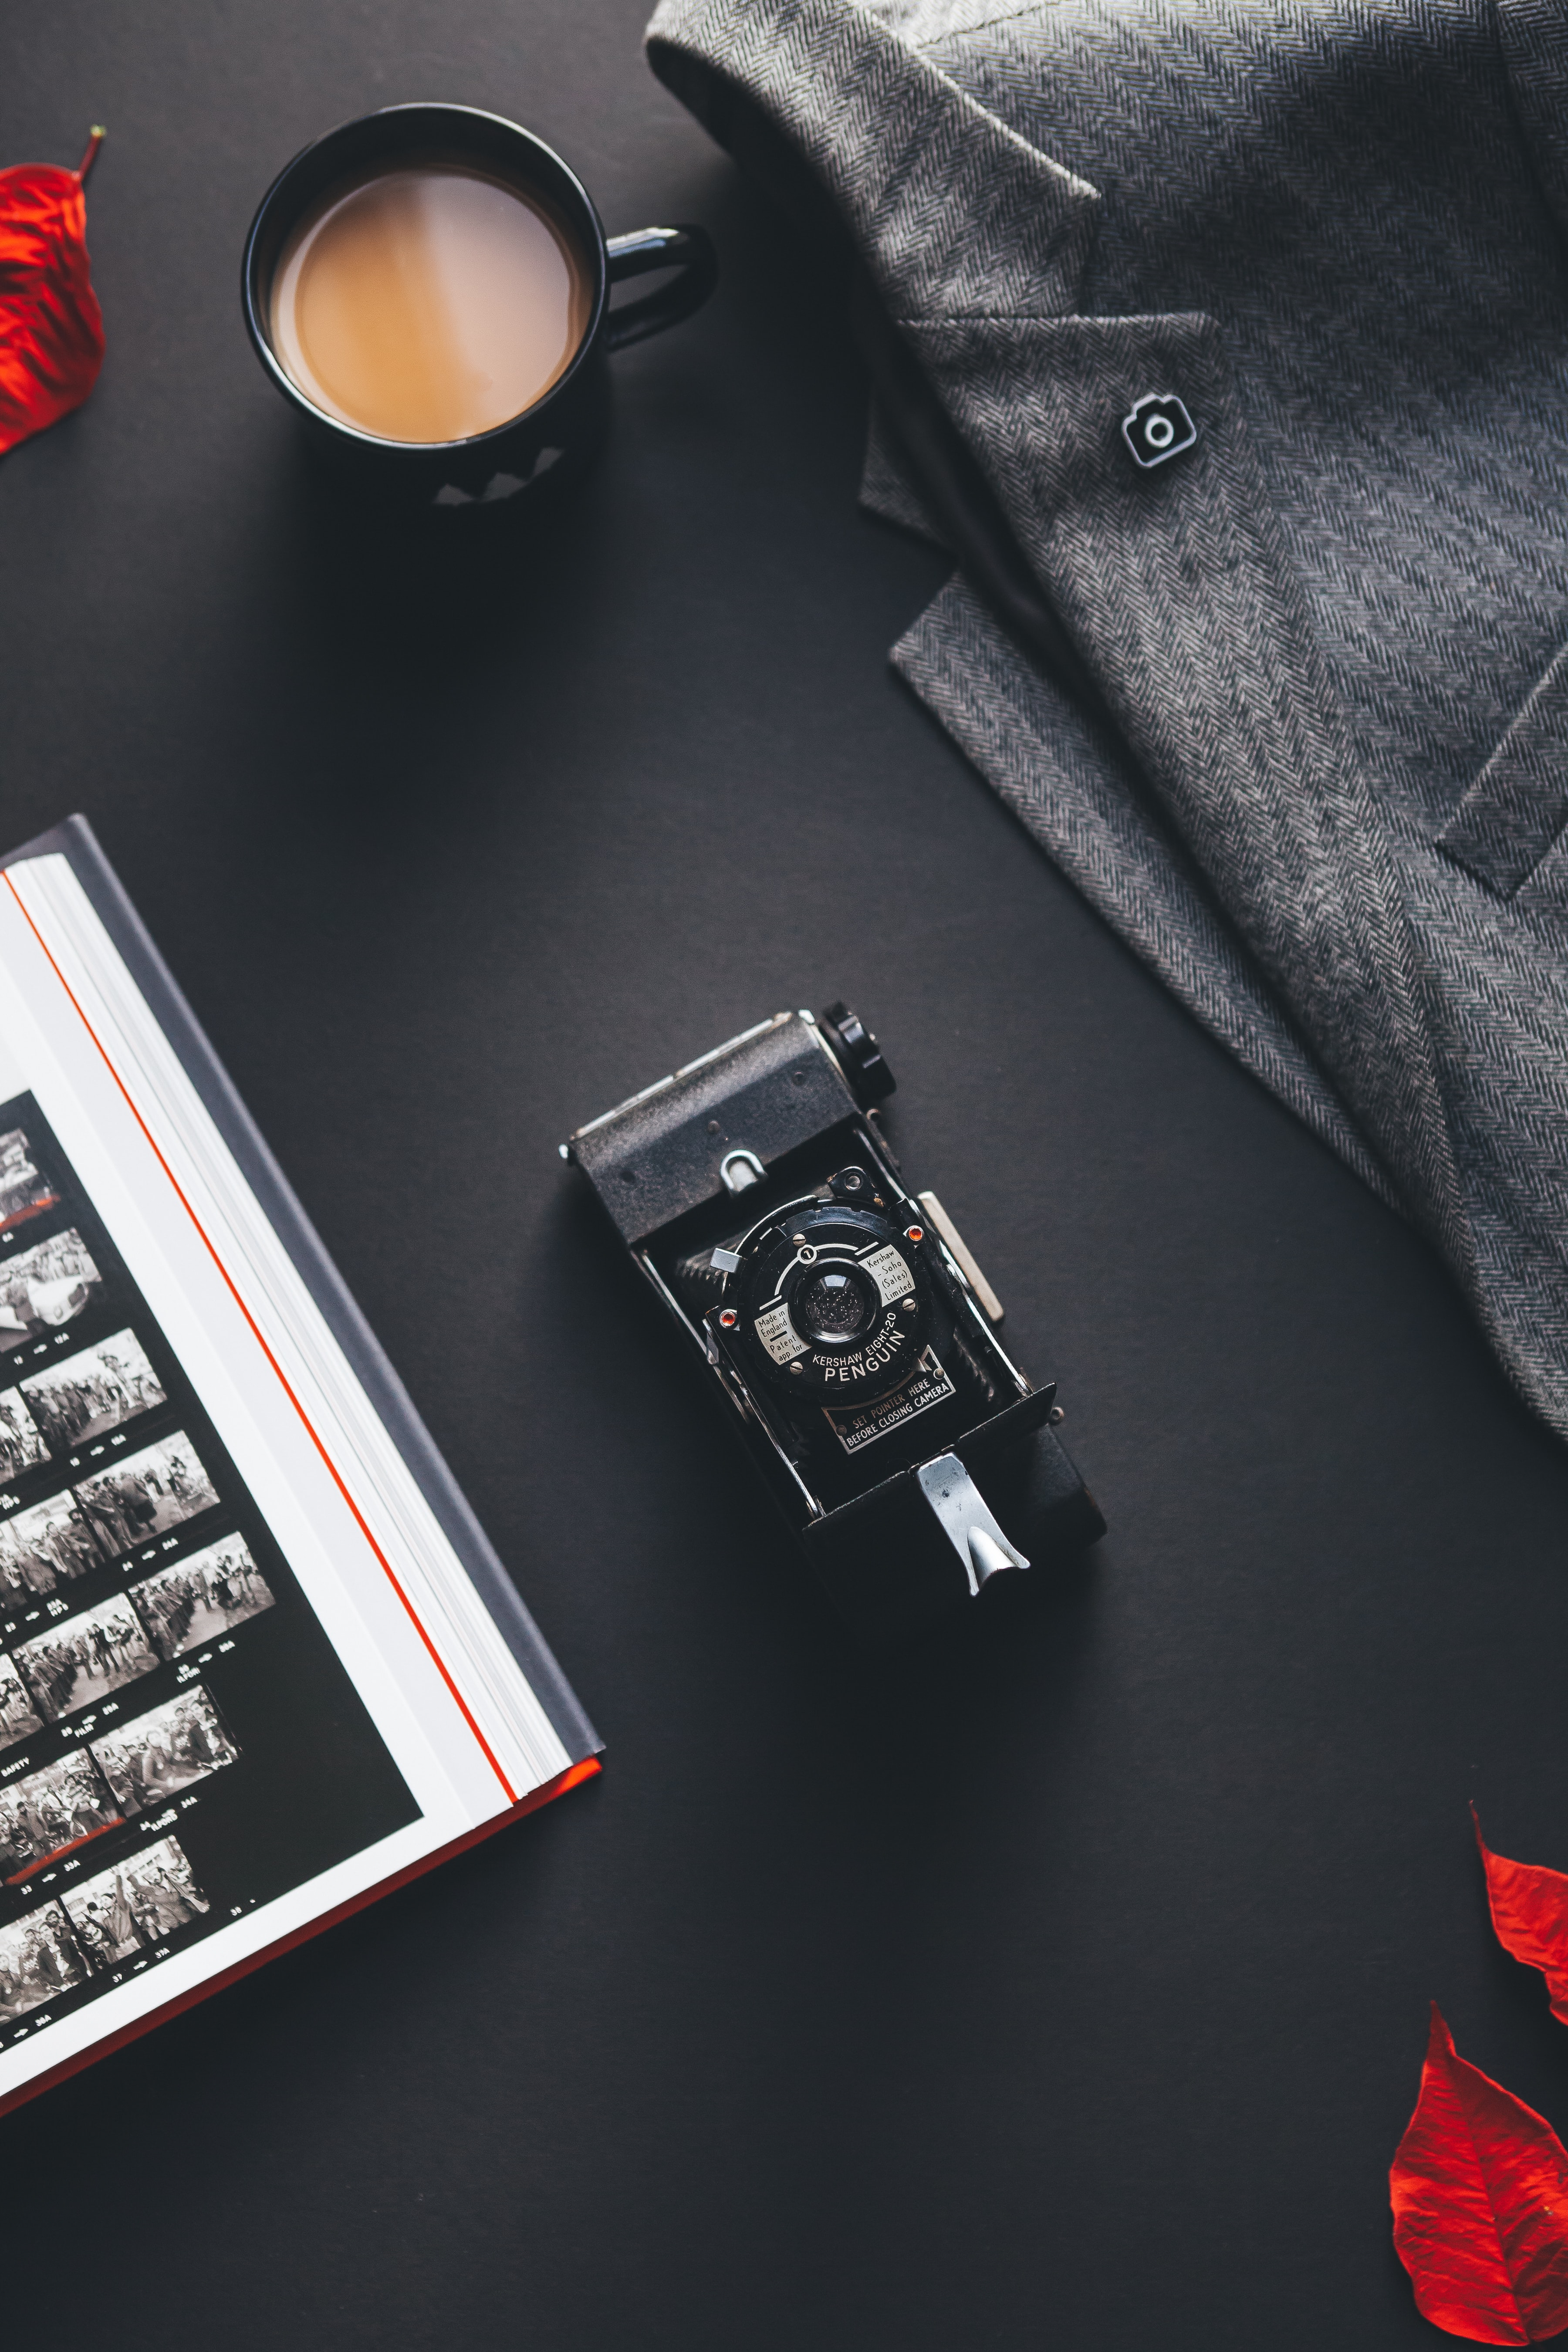 A flatlay of a vintage camera, jacket, Unsplash pin, cup of coffee, contact sheet, and red leaves